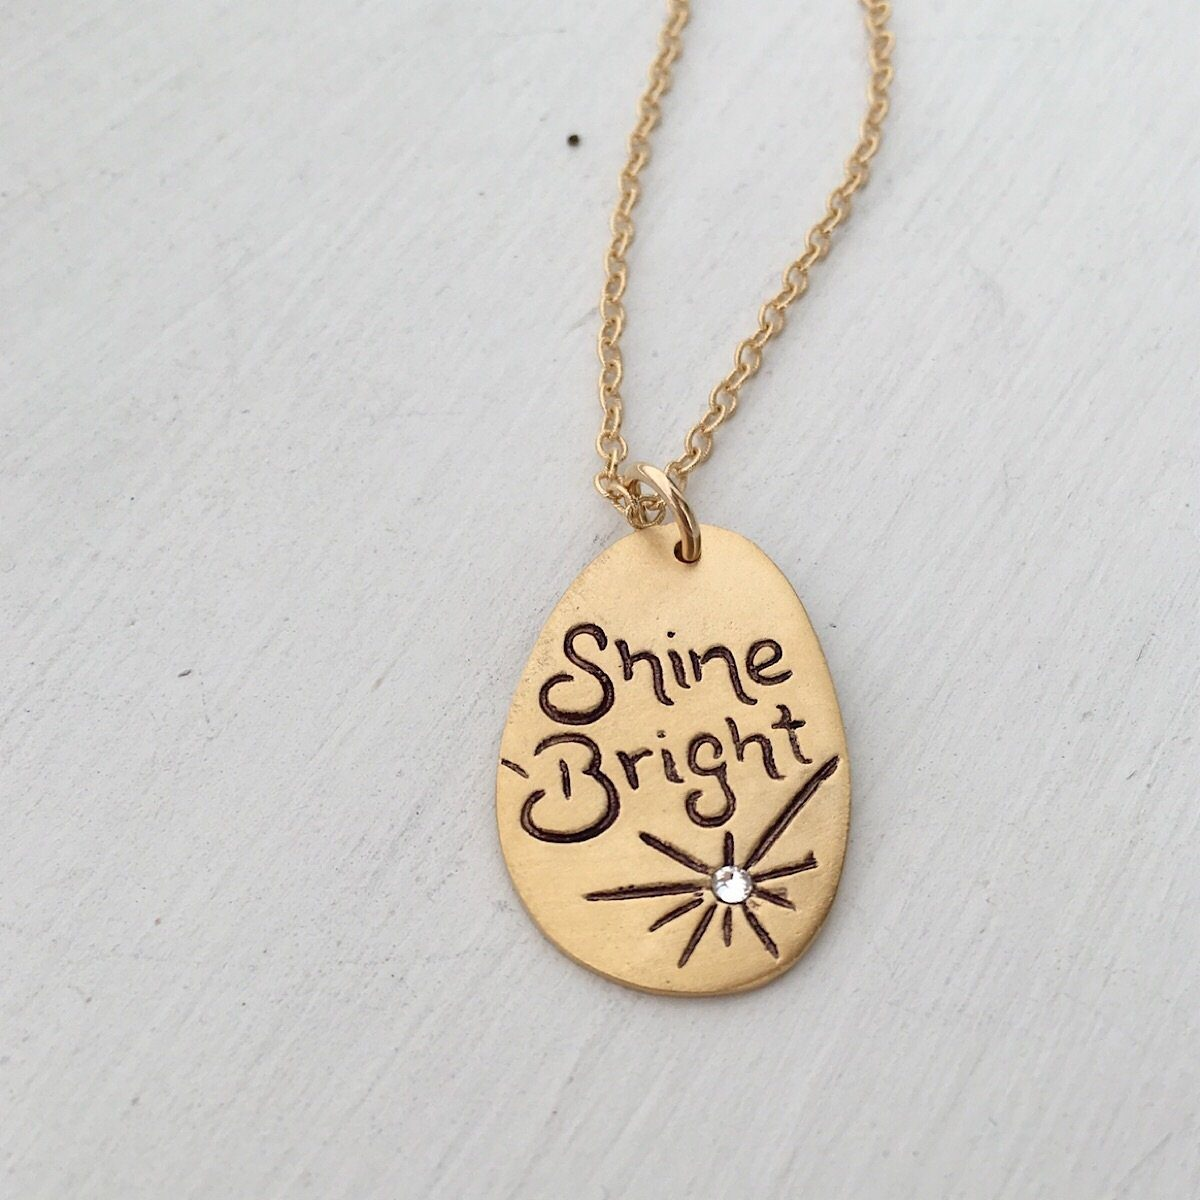 Shine Bright Necklace  - IsabelleGraceJewelry